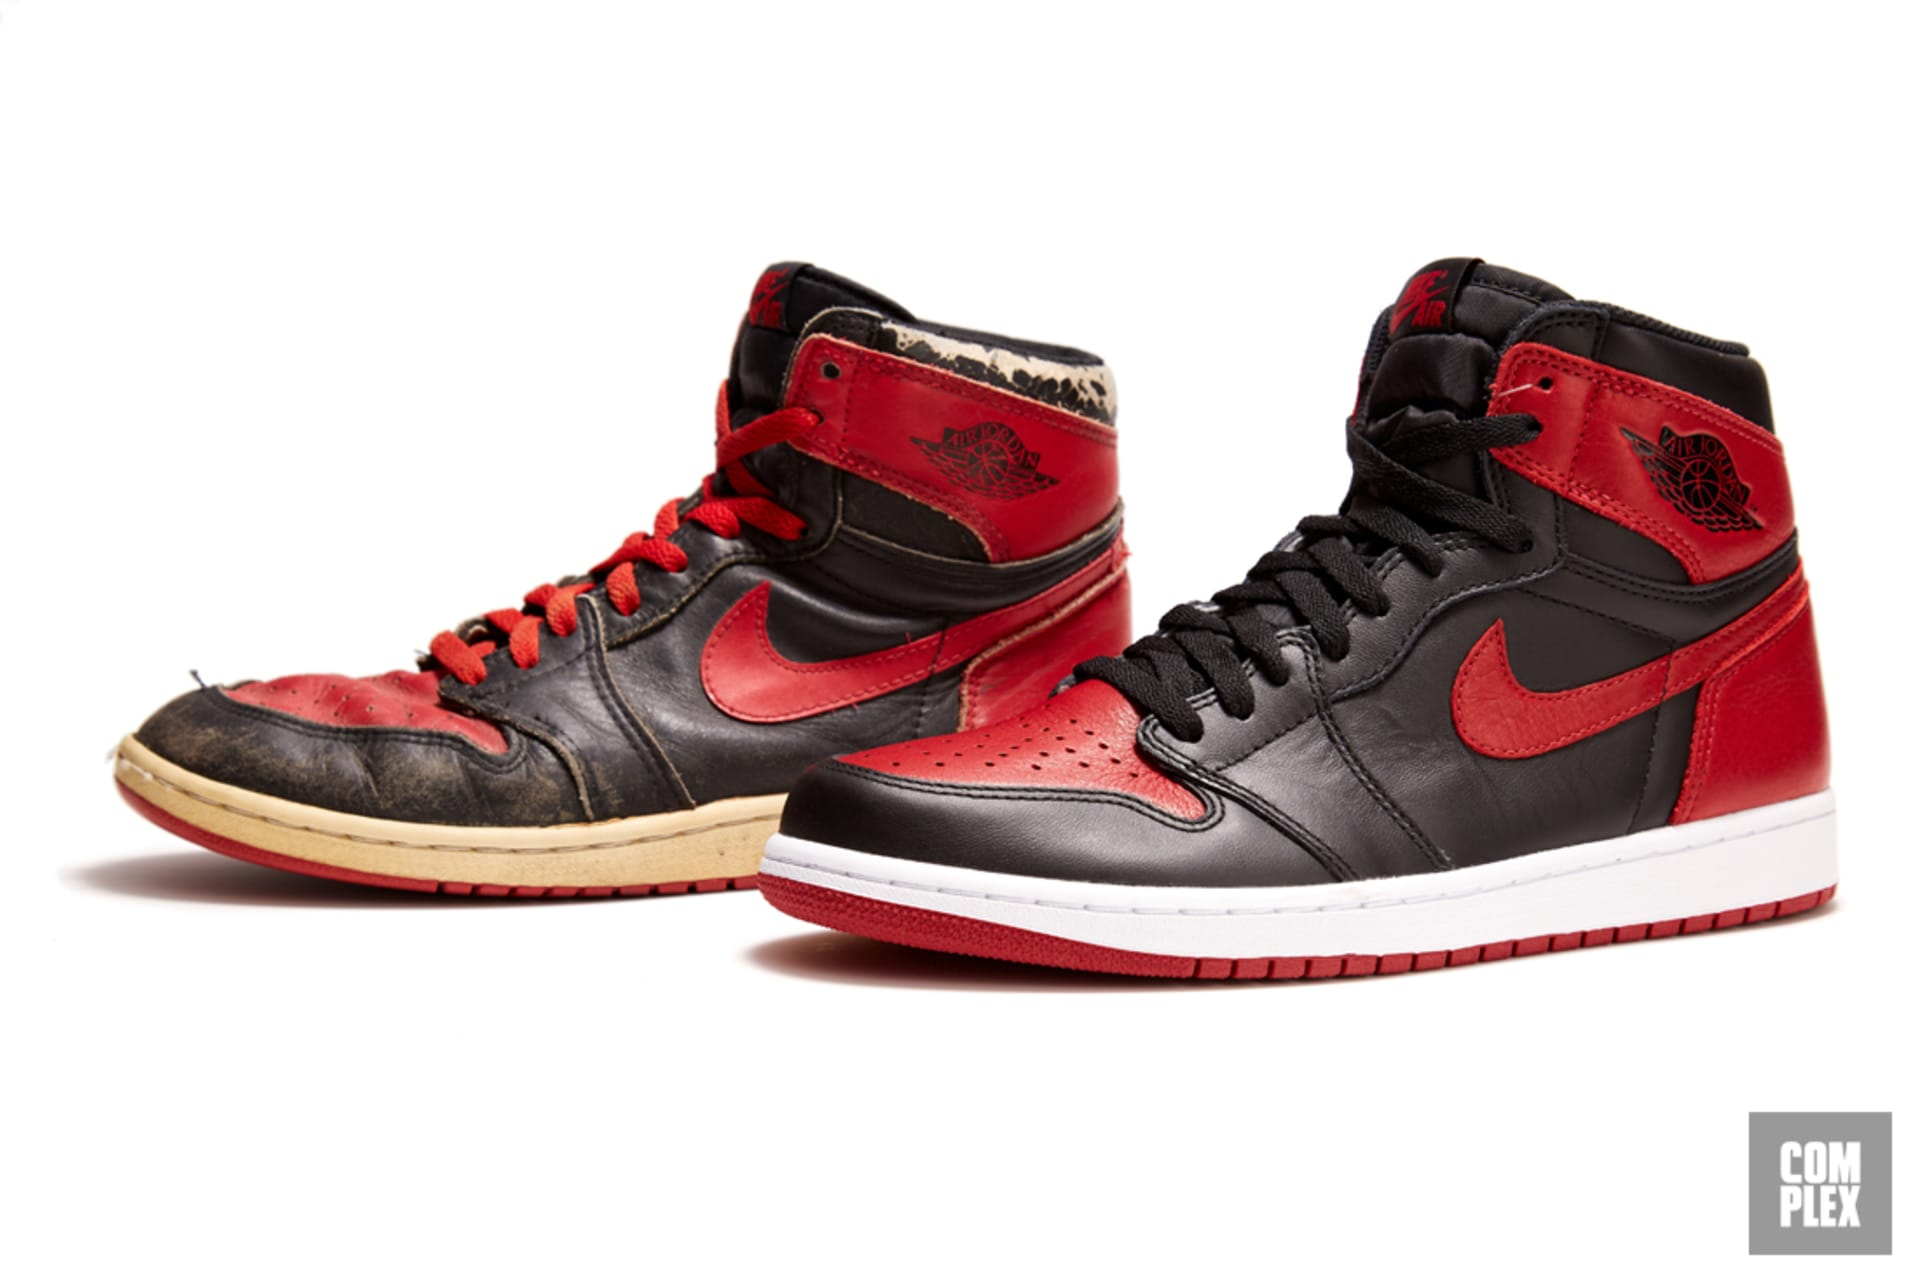 a4beefecb9d8d4 The Evolution of the Black and Red Air Jordan 1